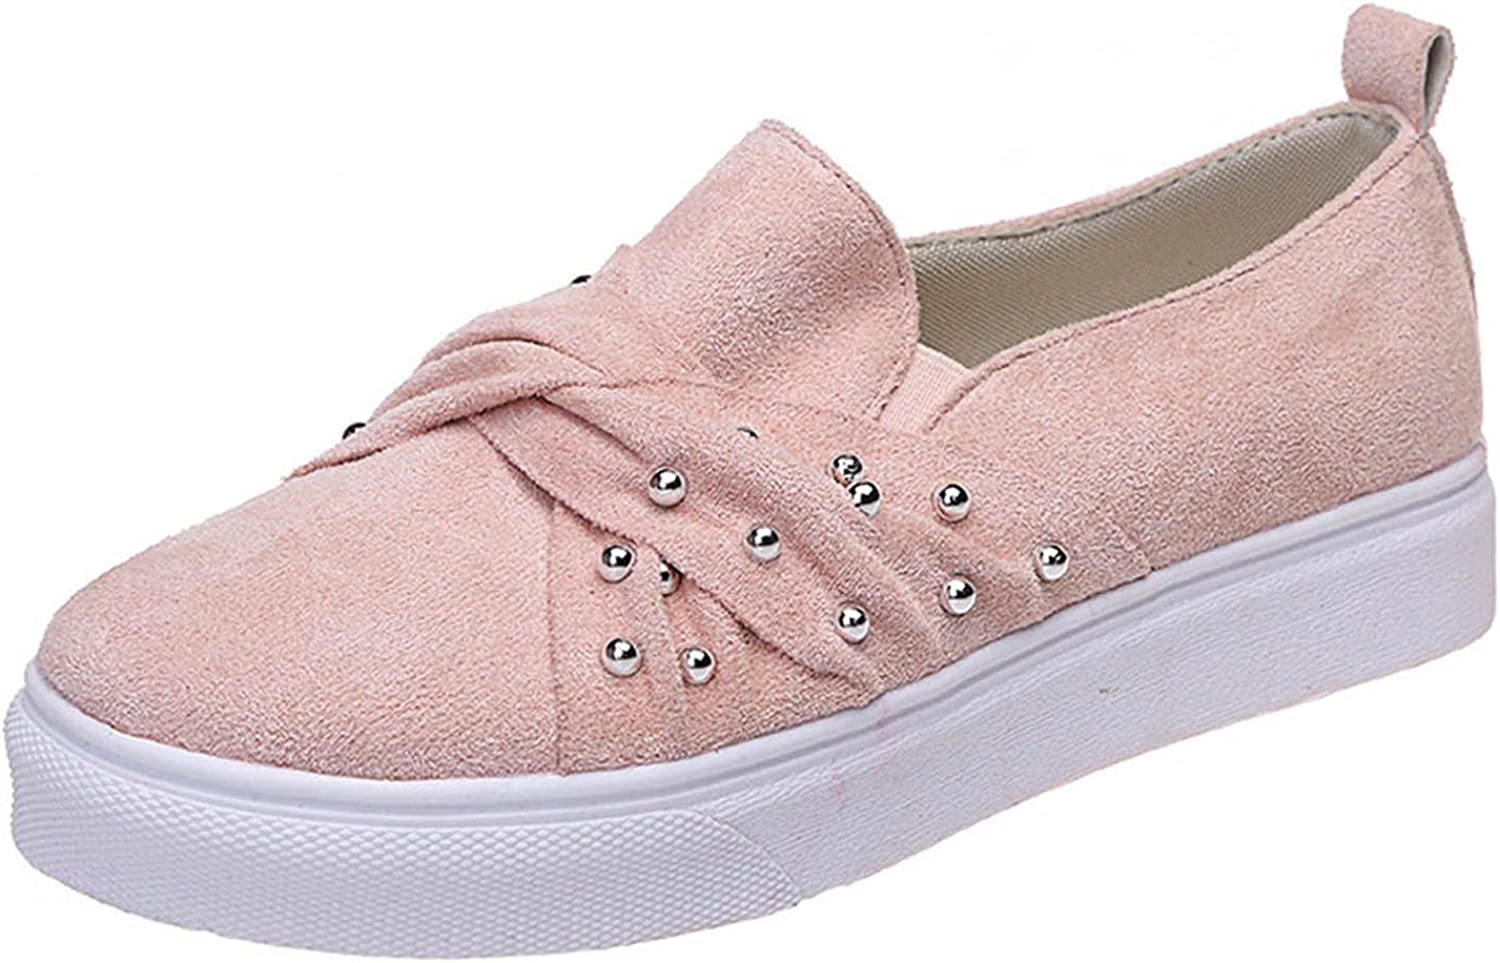 Women's Suede Ranking TOP10 Slip-Ons Round Toe Deco Mouth Pearl Shallow outlet Loafer